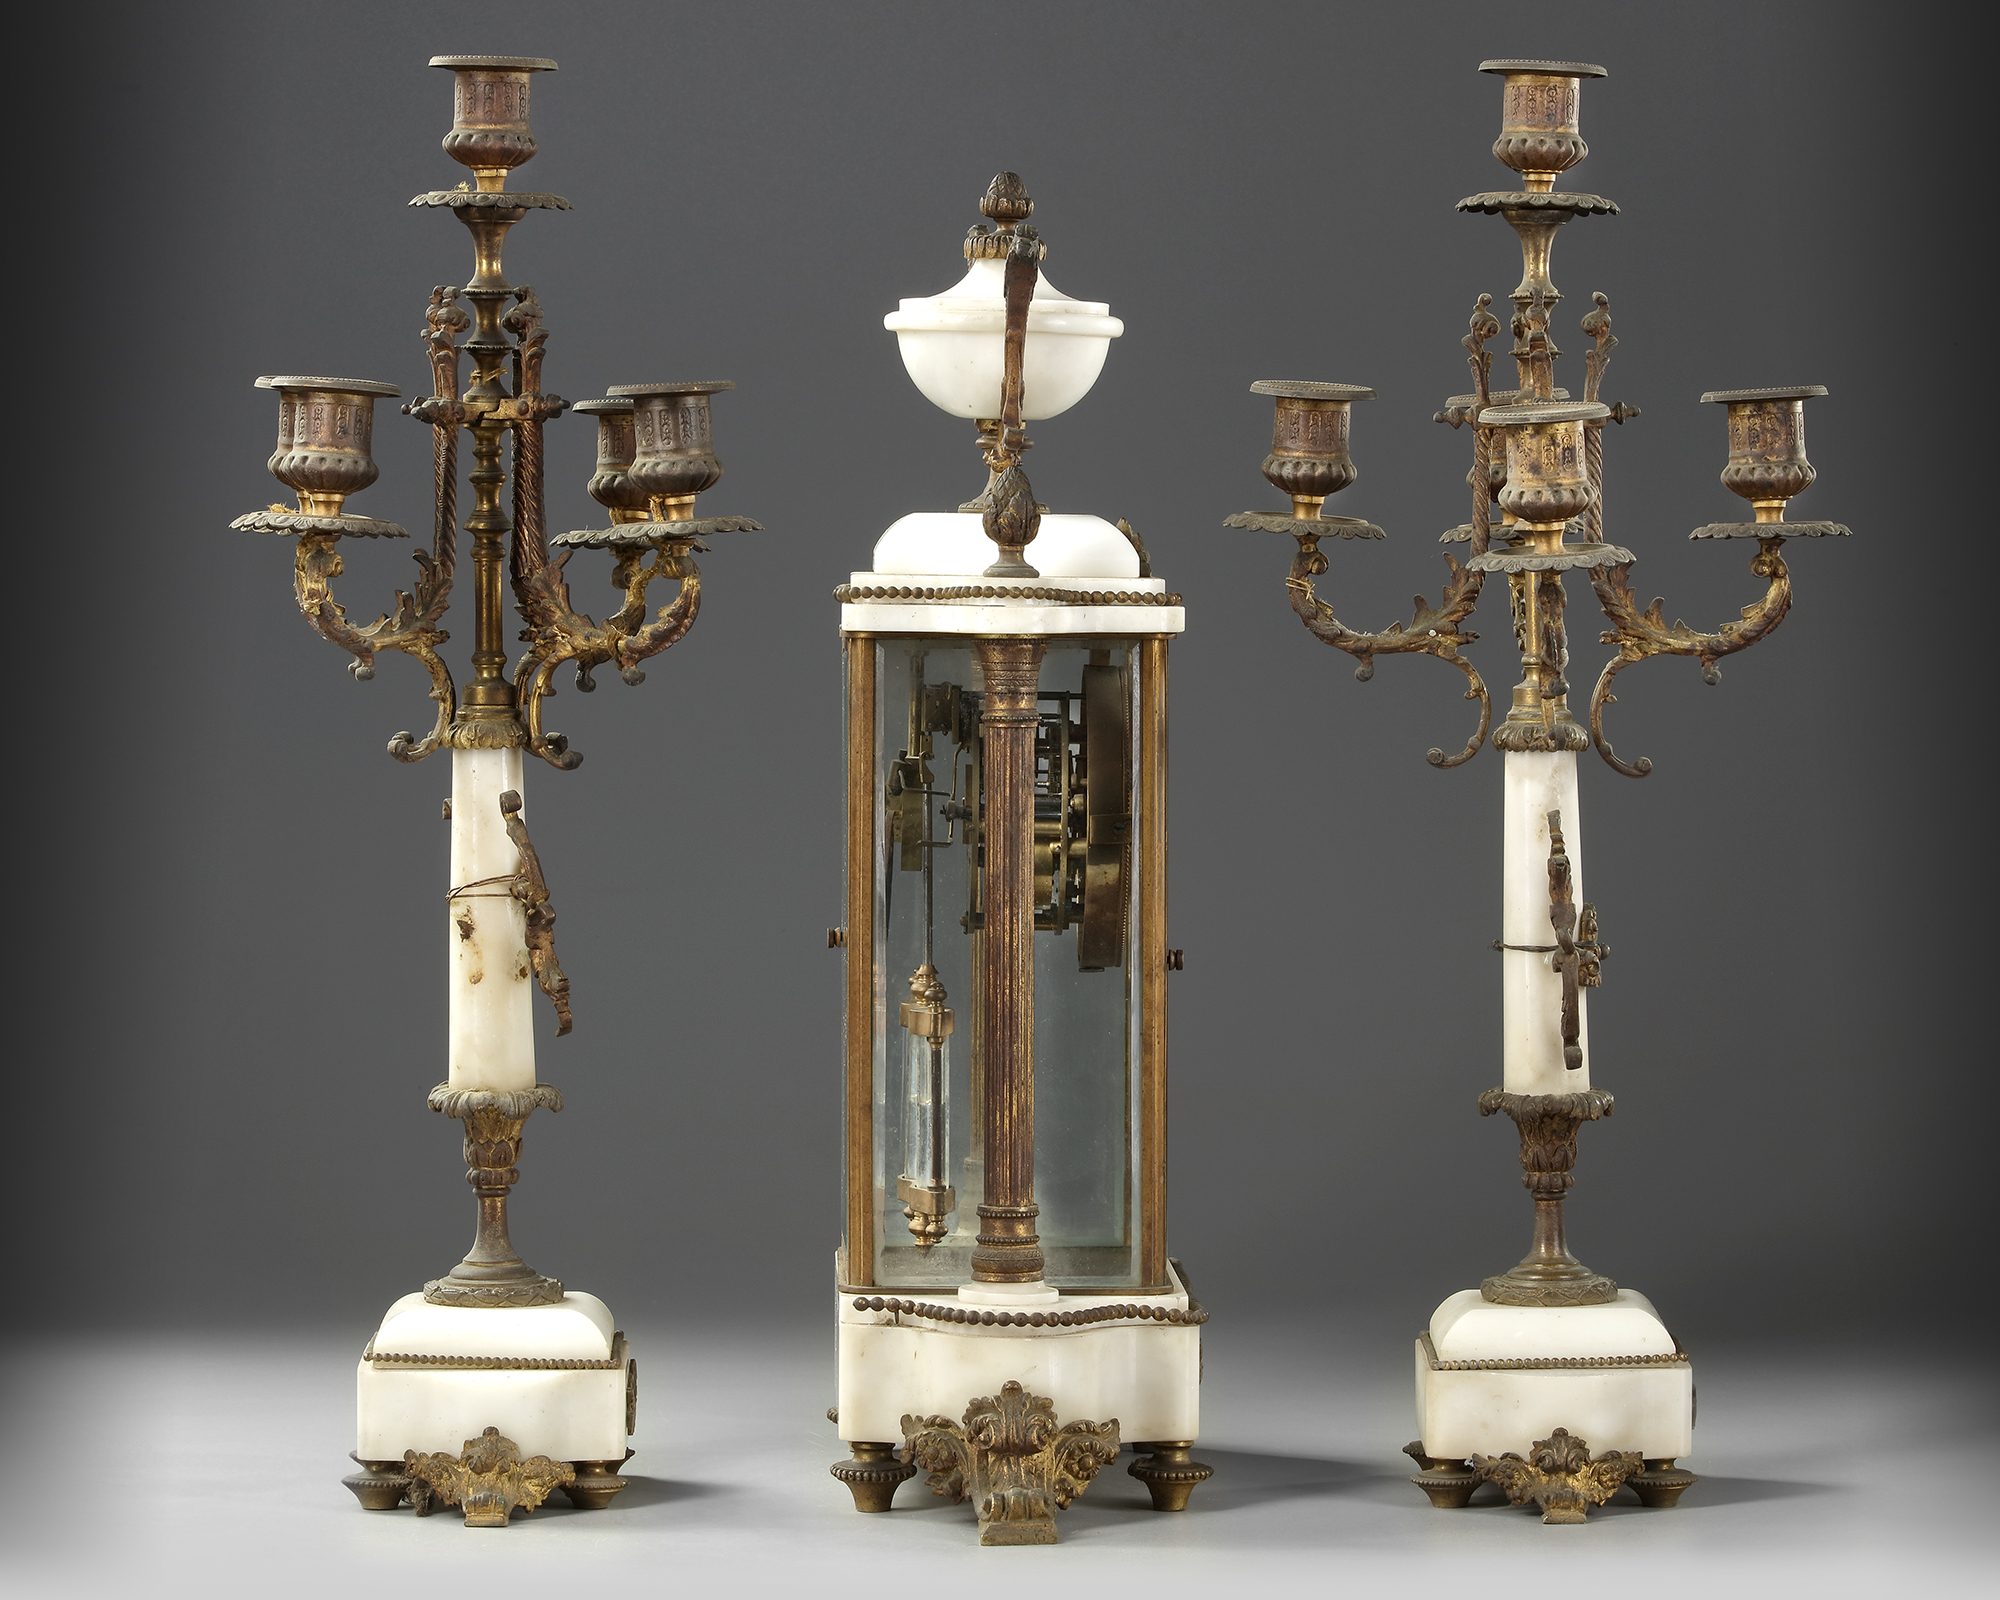 A FRENCH CLOCK SET, LATE 19TH CENTURY - Image 3 of 5